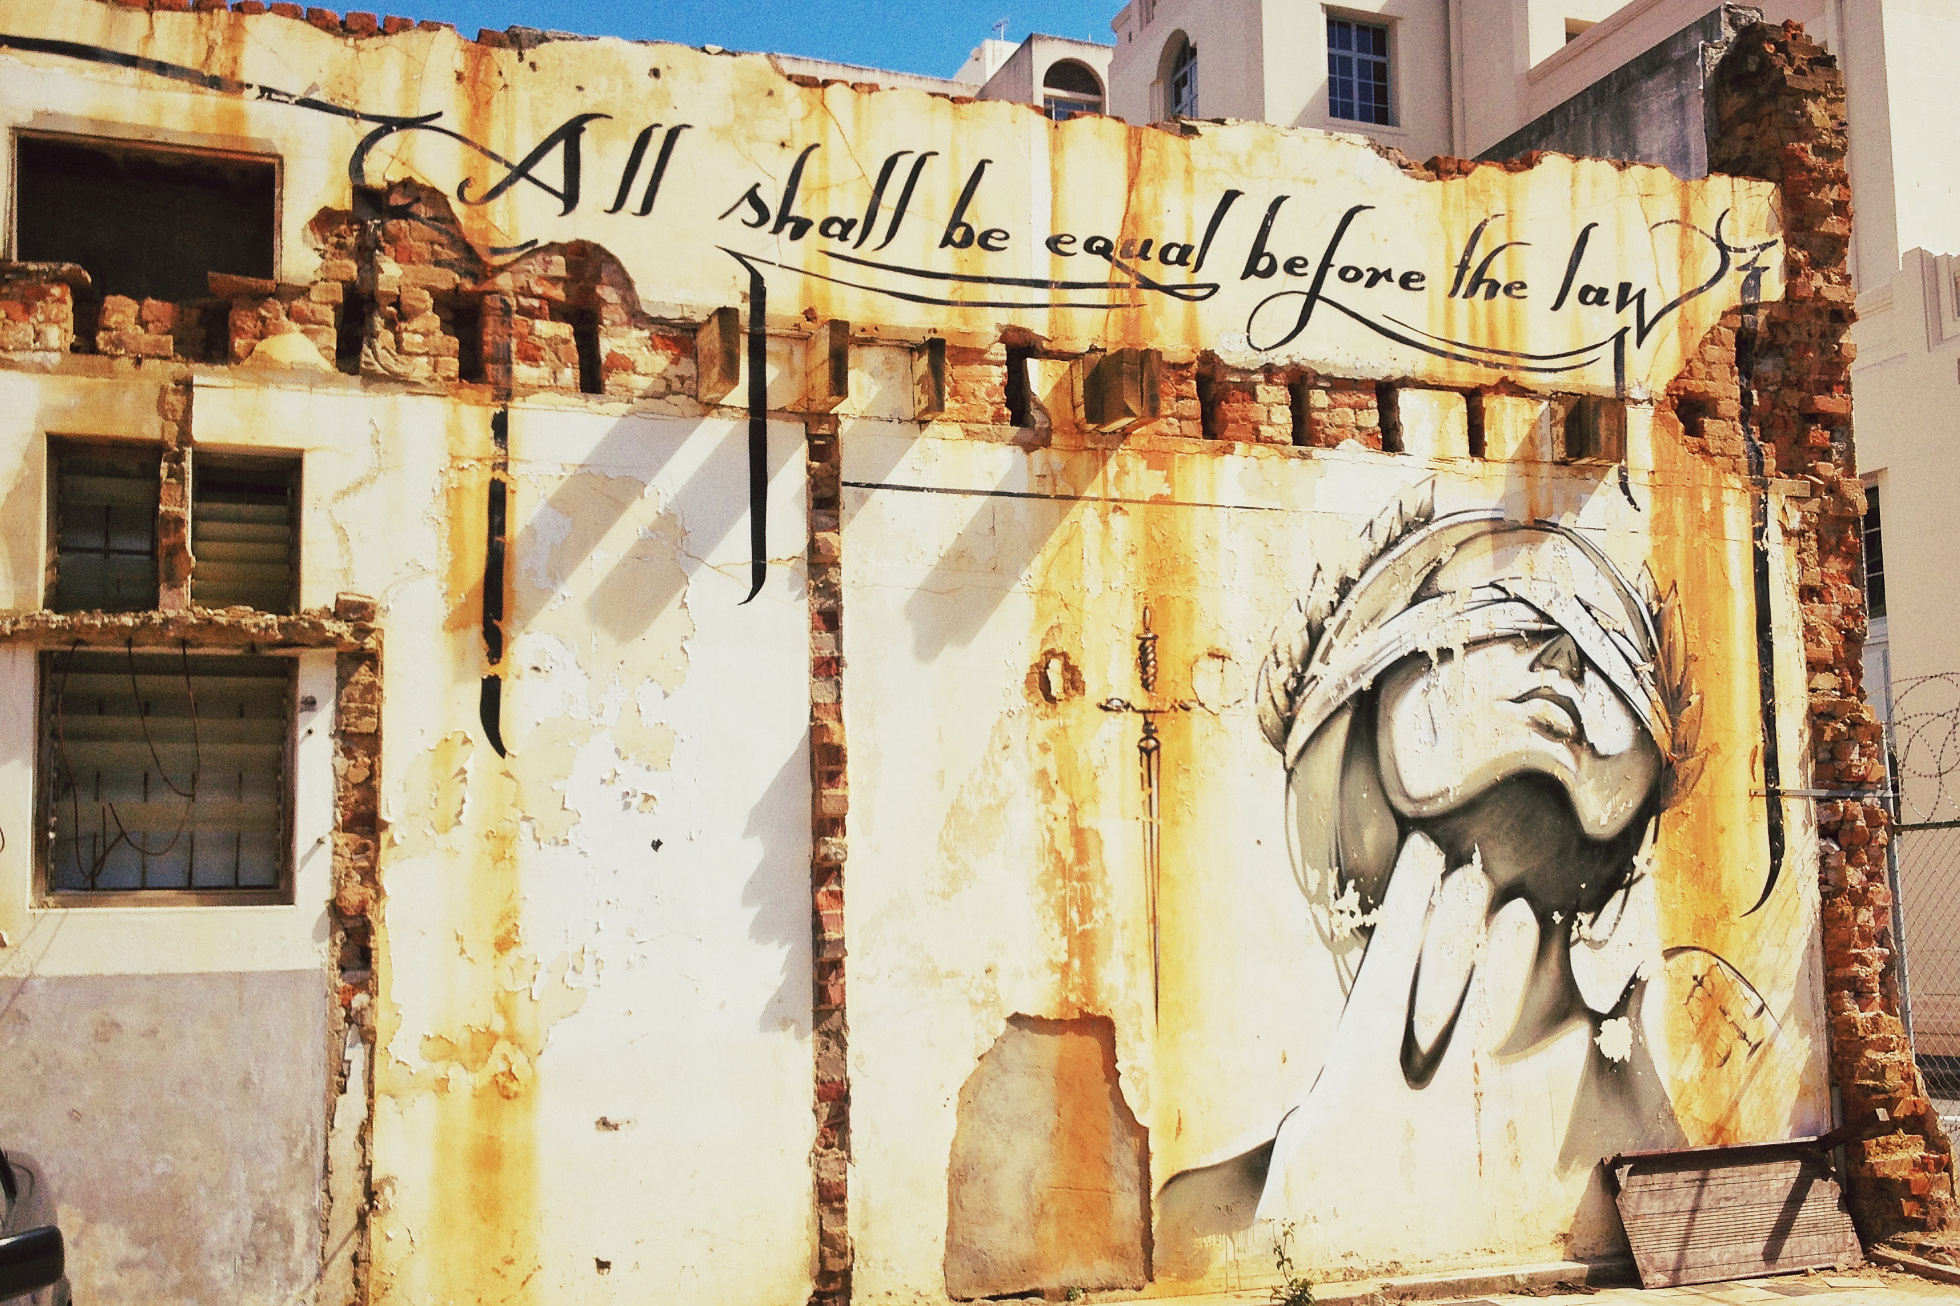 All shall be equal before the law - Graffiti in Cape Town, South Africa